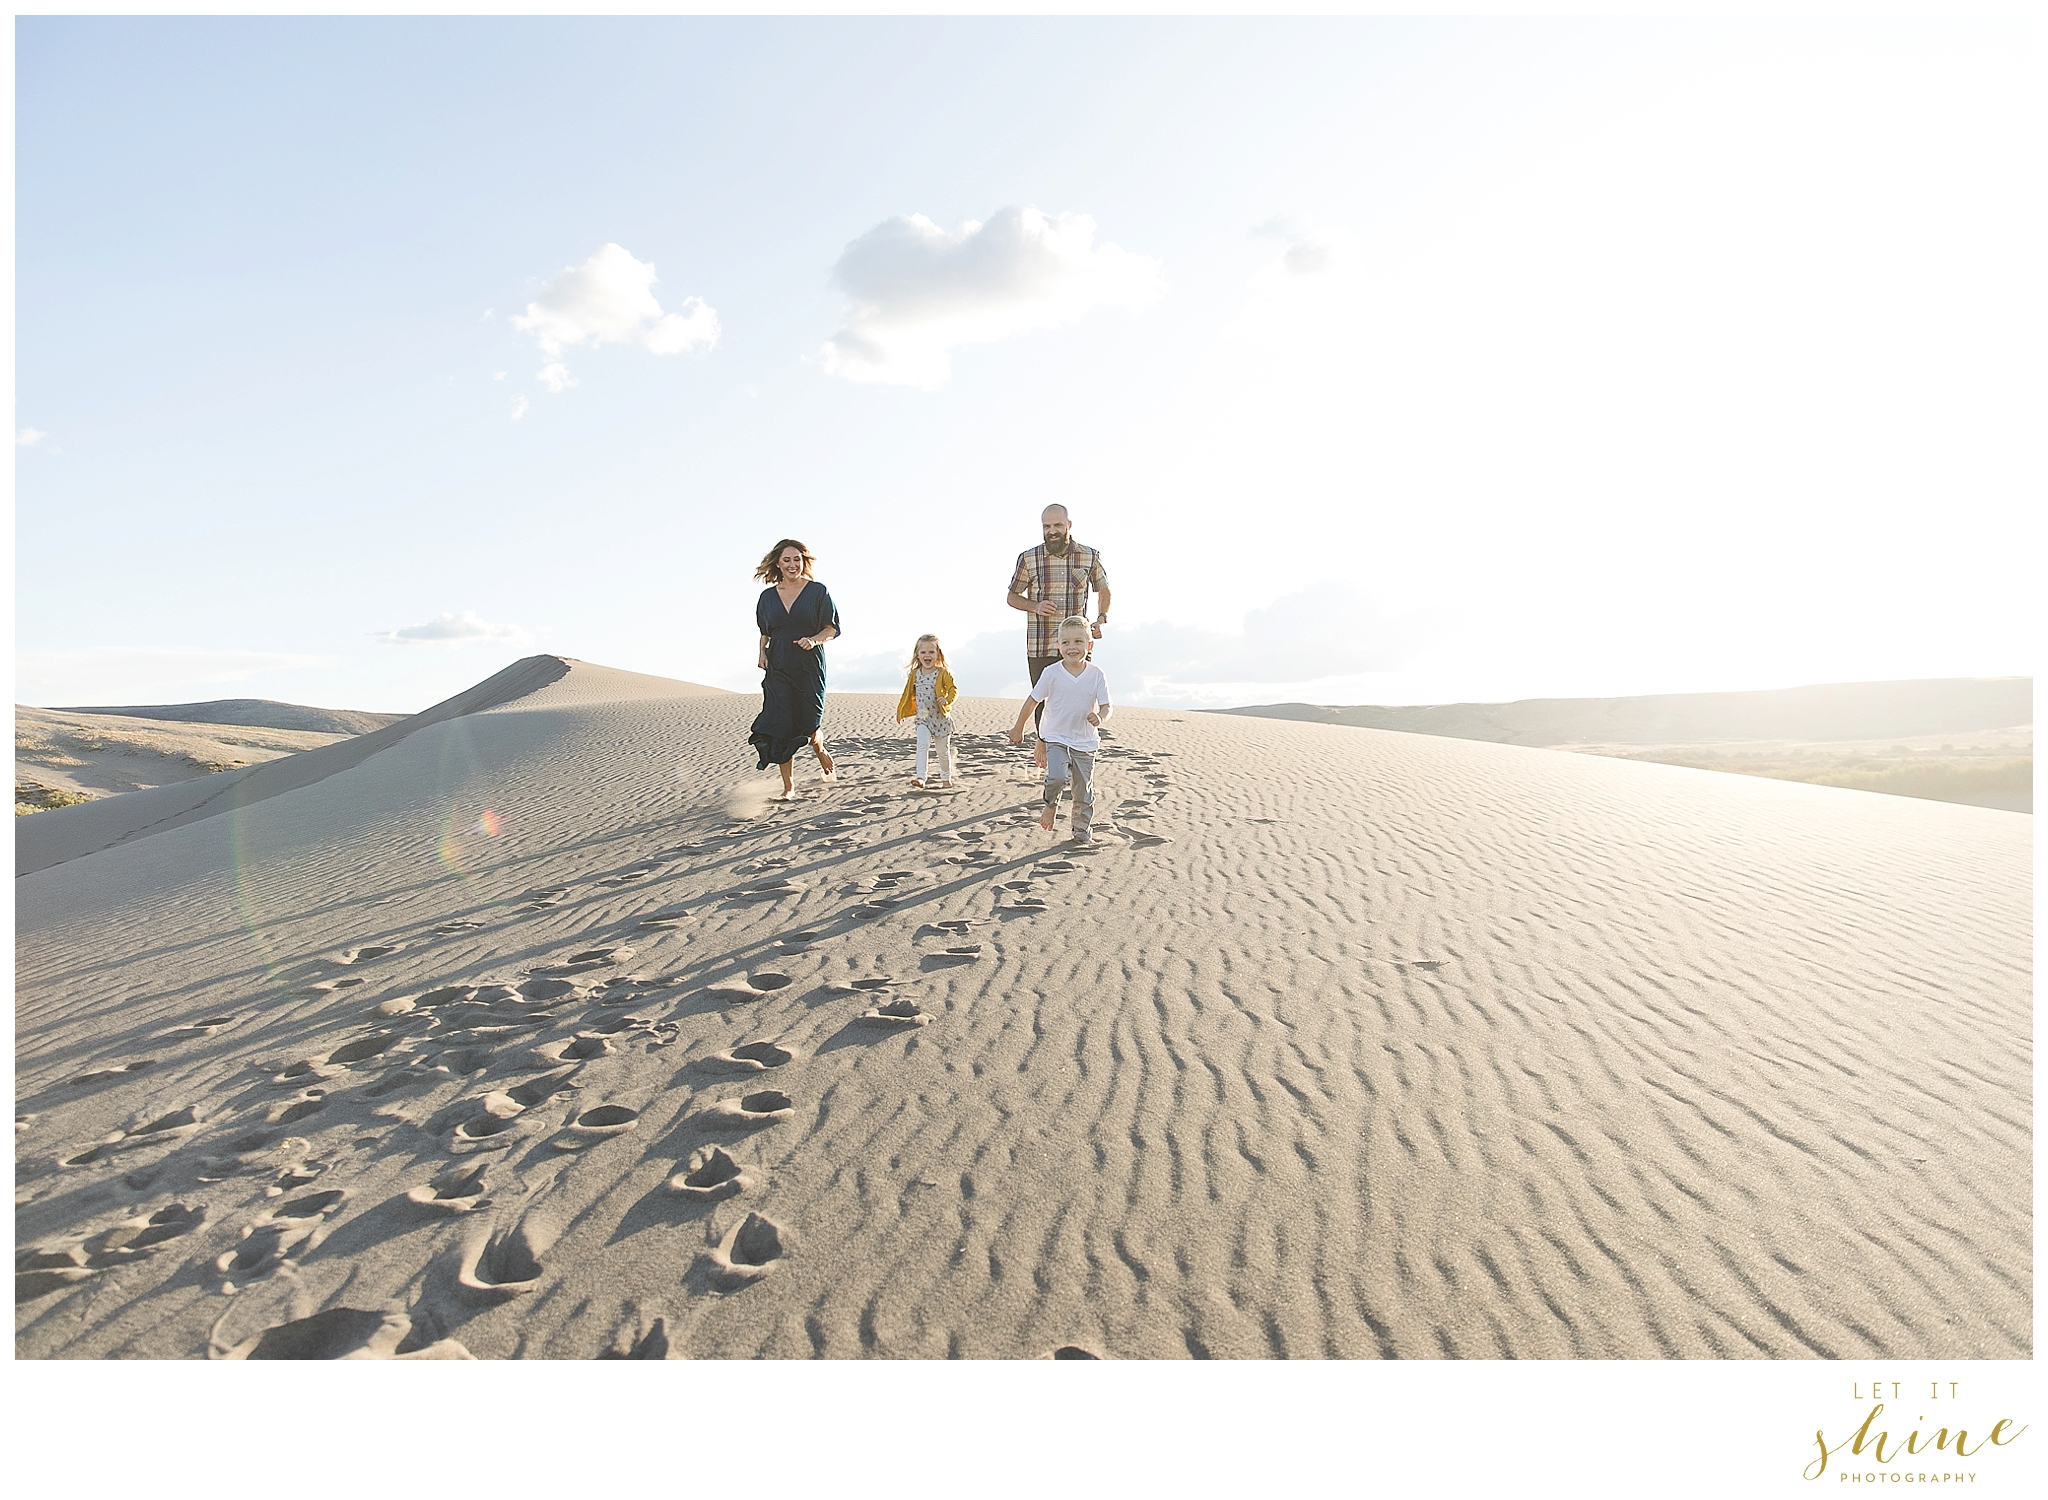 Bruneau Sand Dunes Family Session Let it shine Photography-5515.jpg